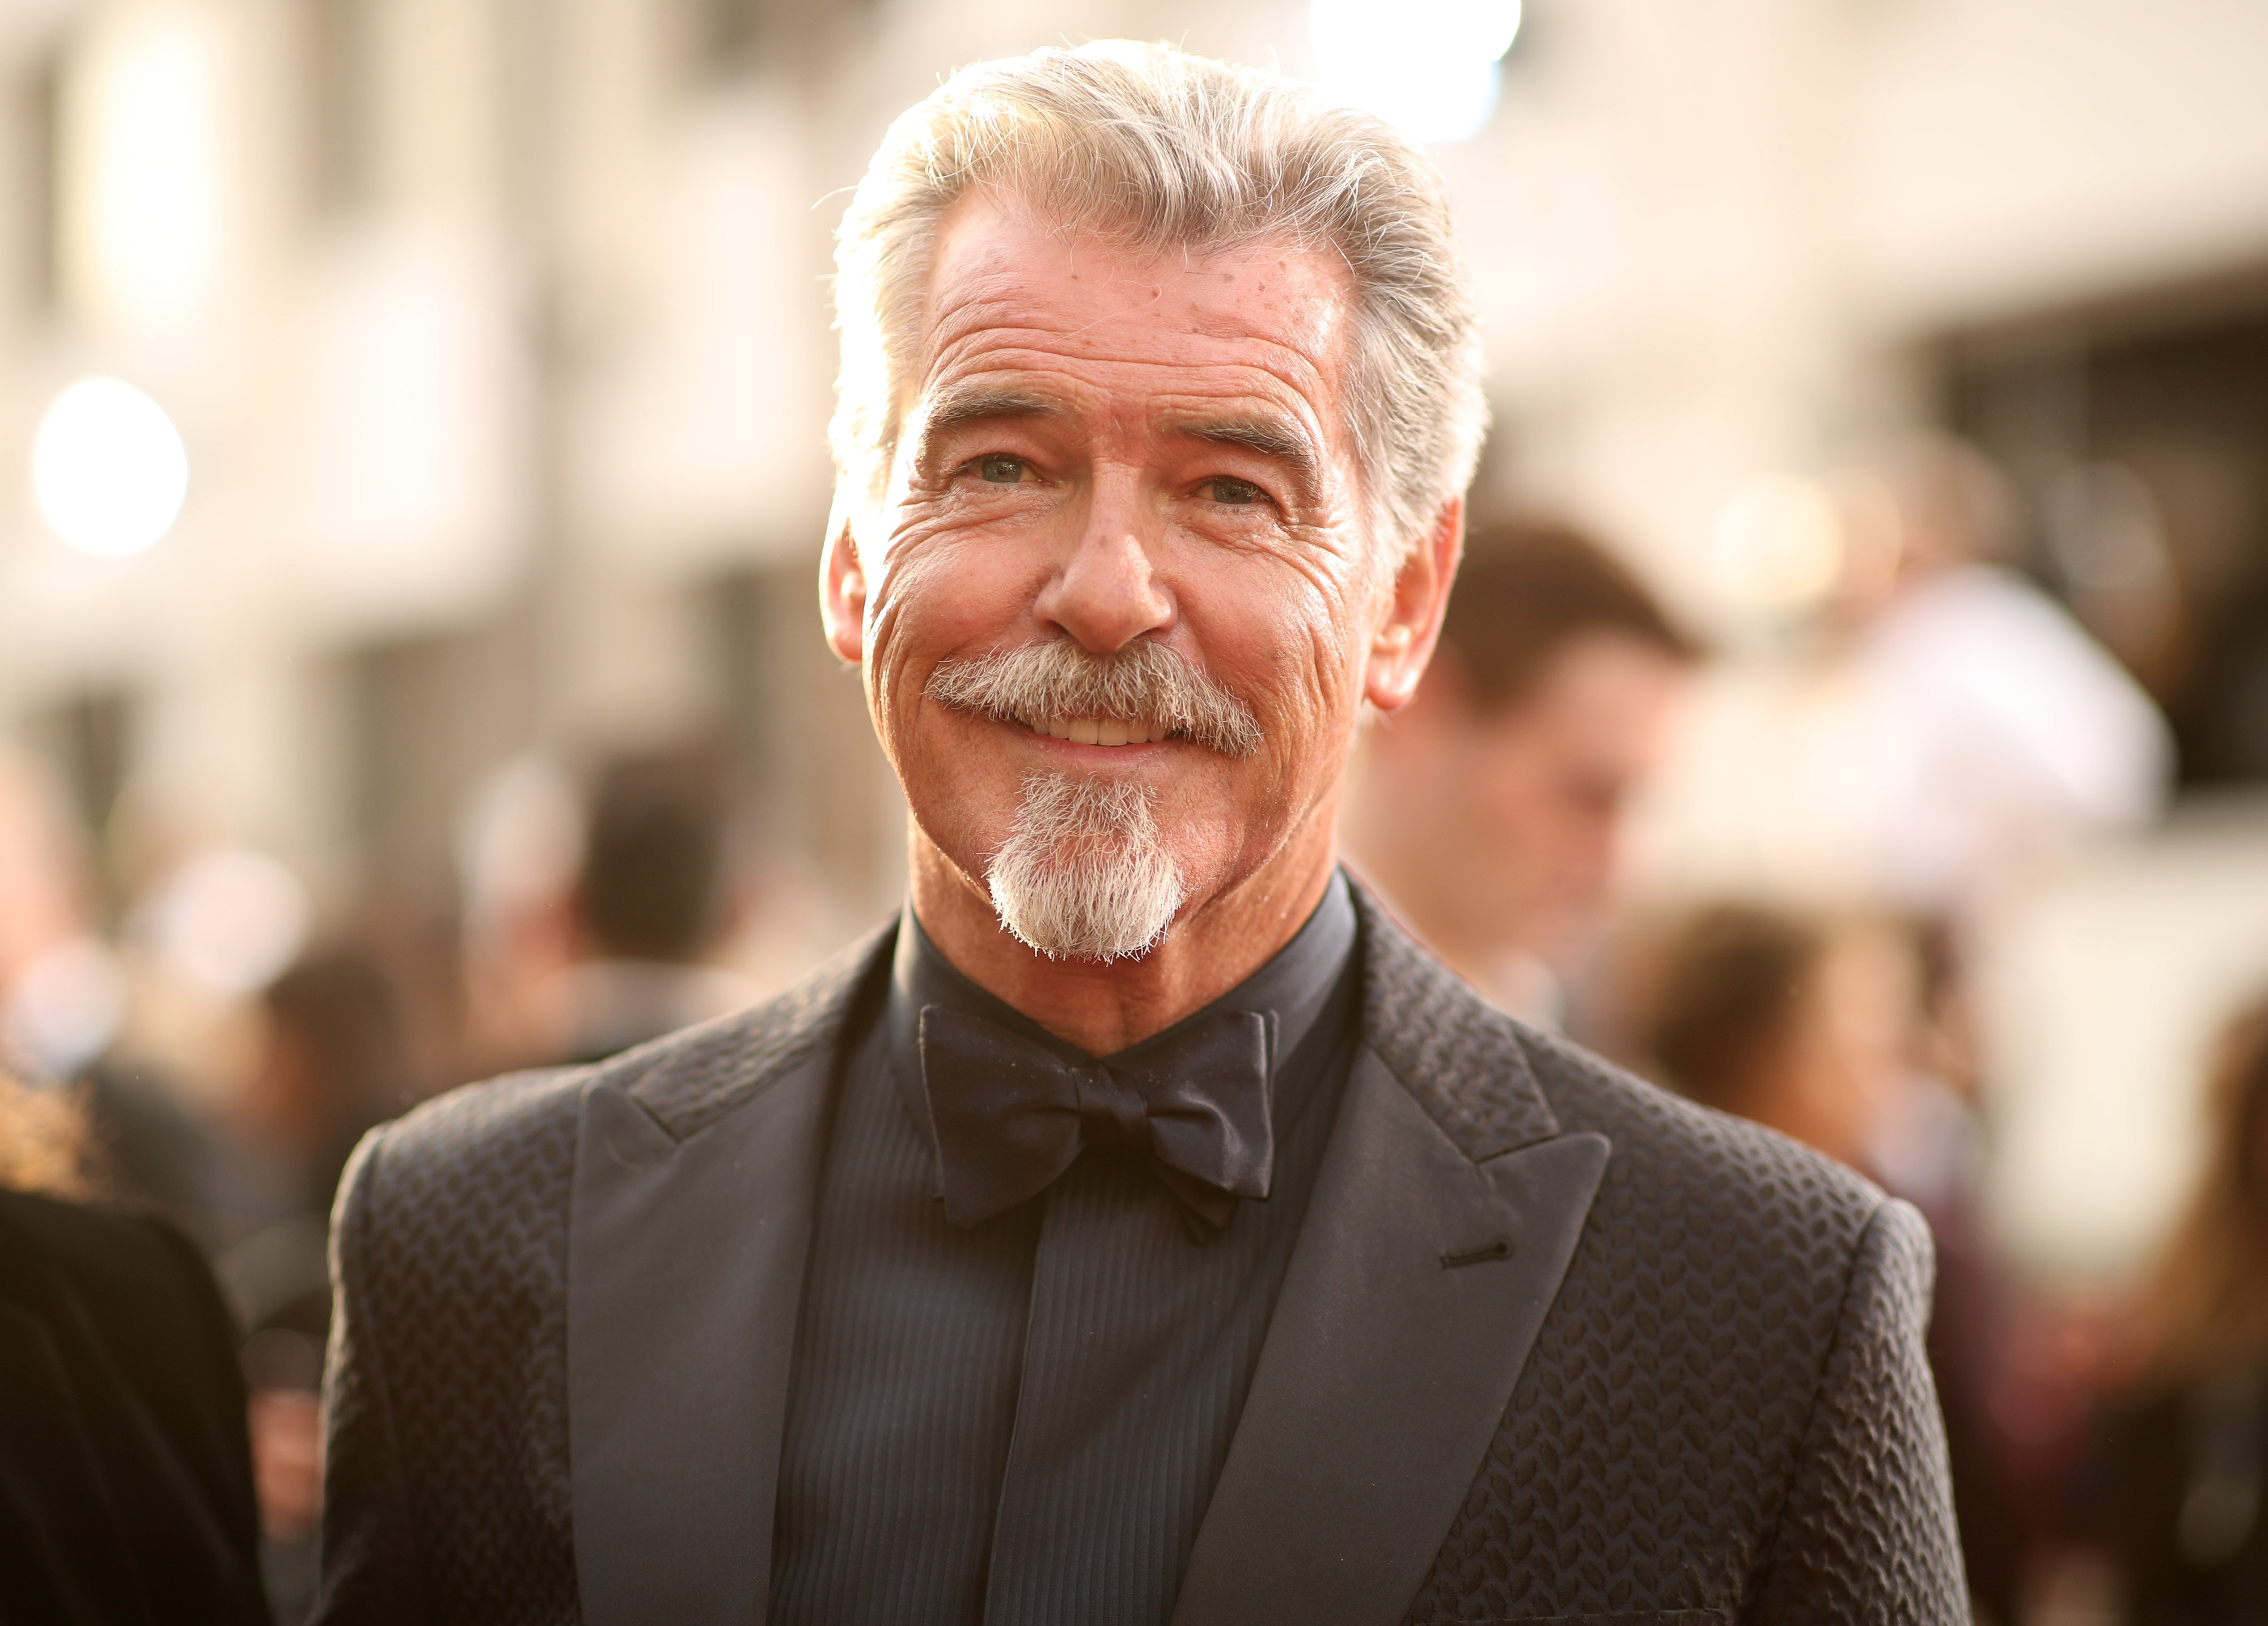 Pierce Brosnan arrives to the 77th Annual Golden Globe Awards held at the Beverly Hilton Hotel on January 5, 2020   Photo: Getty Images